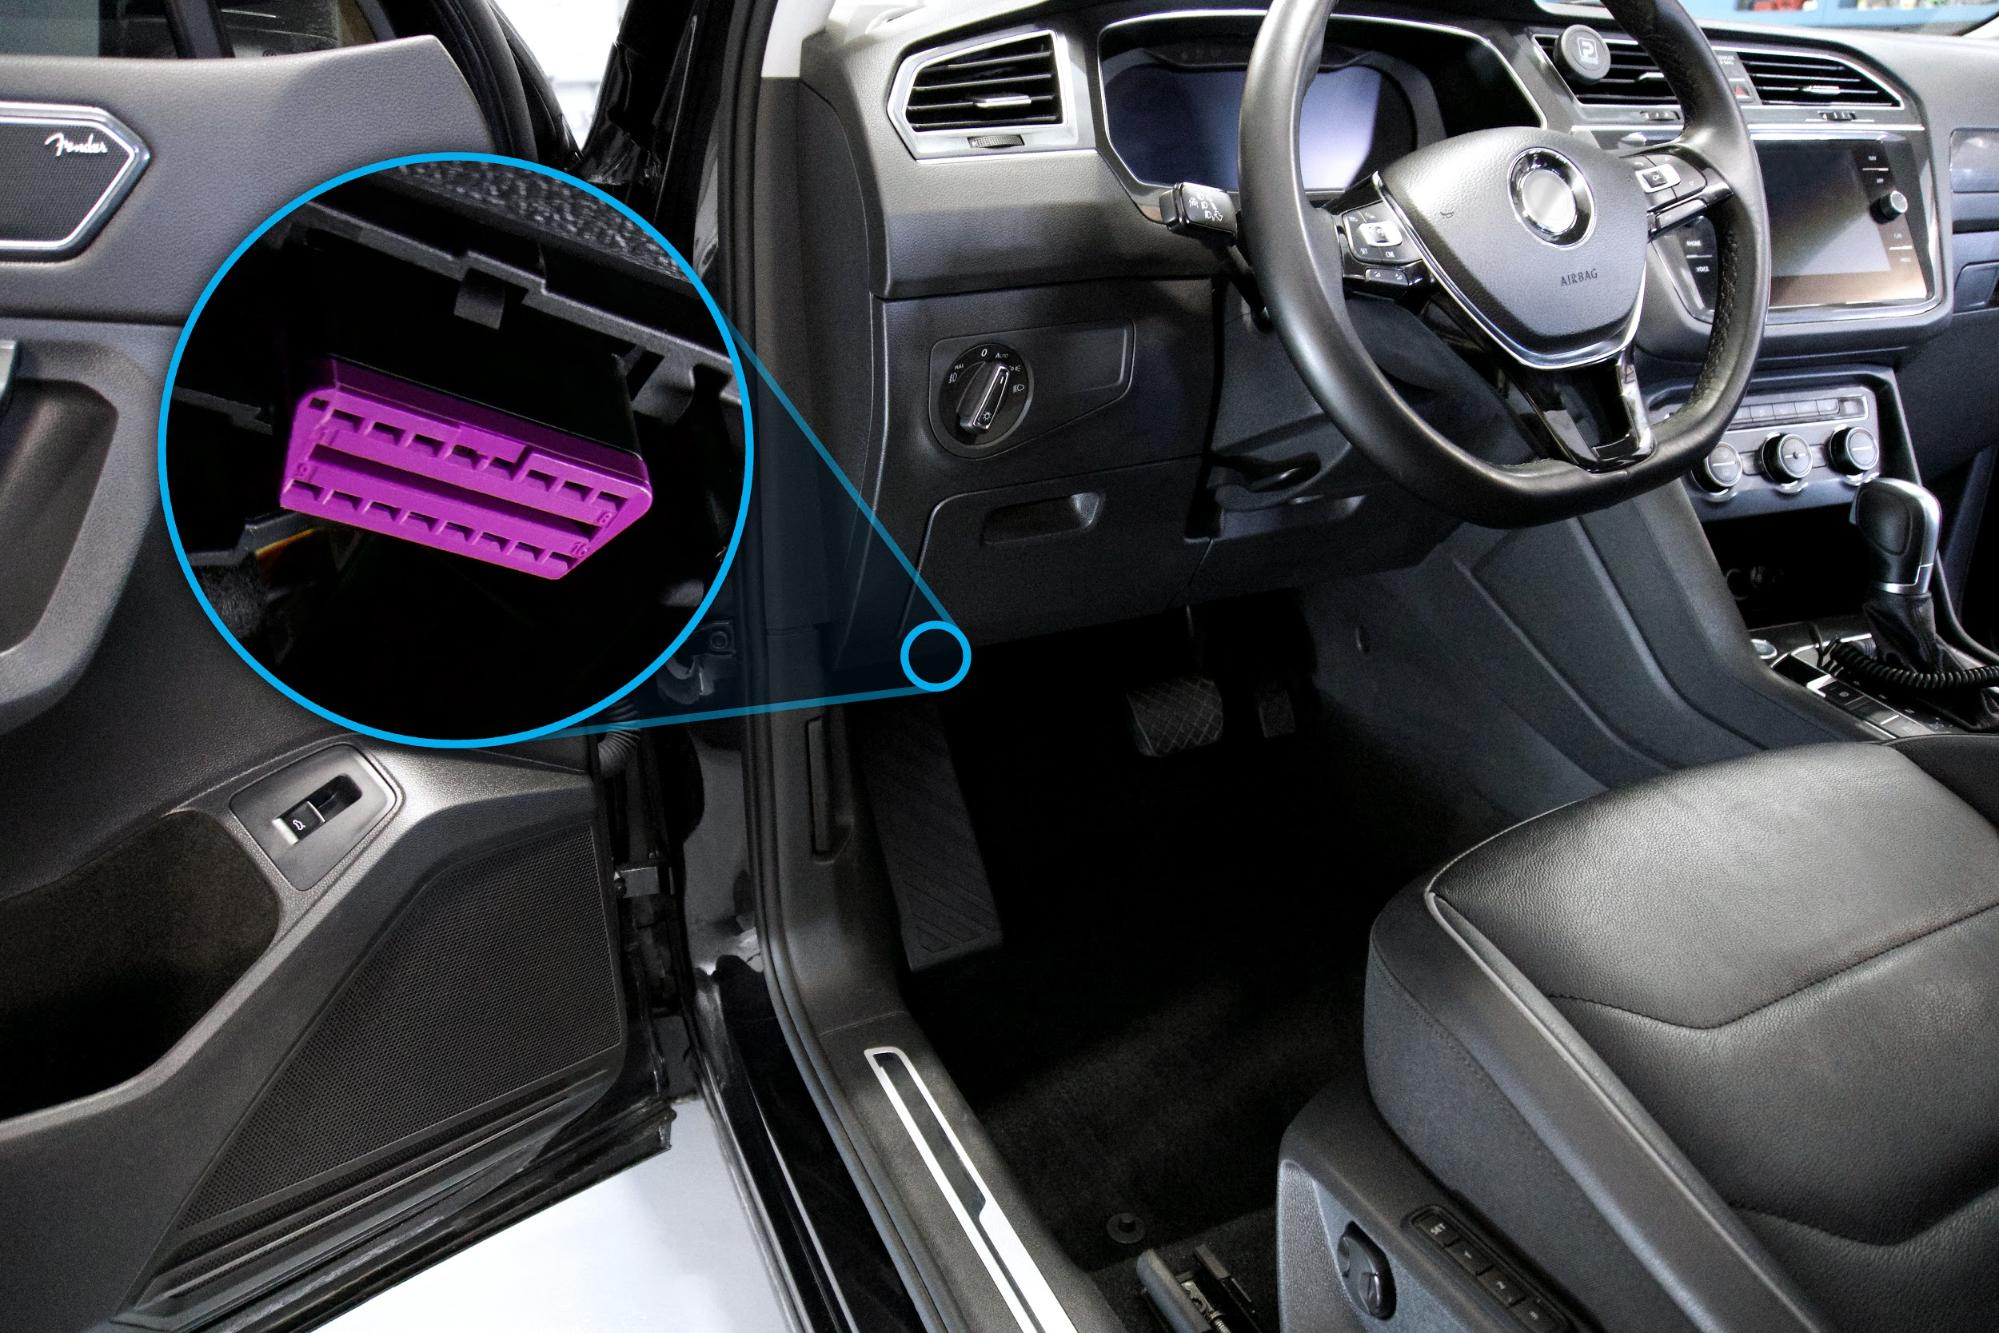 Diagram showing where the OBDII is located inside a vehicle